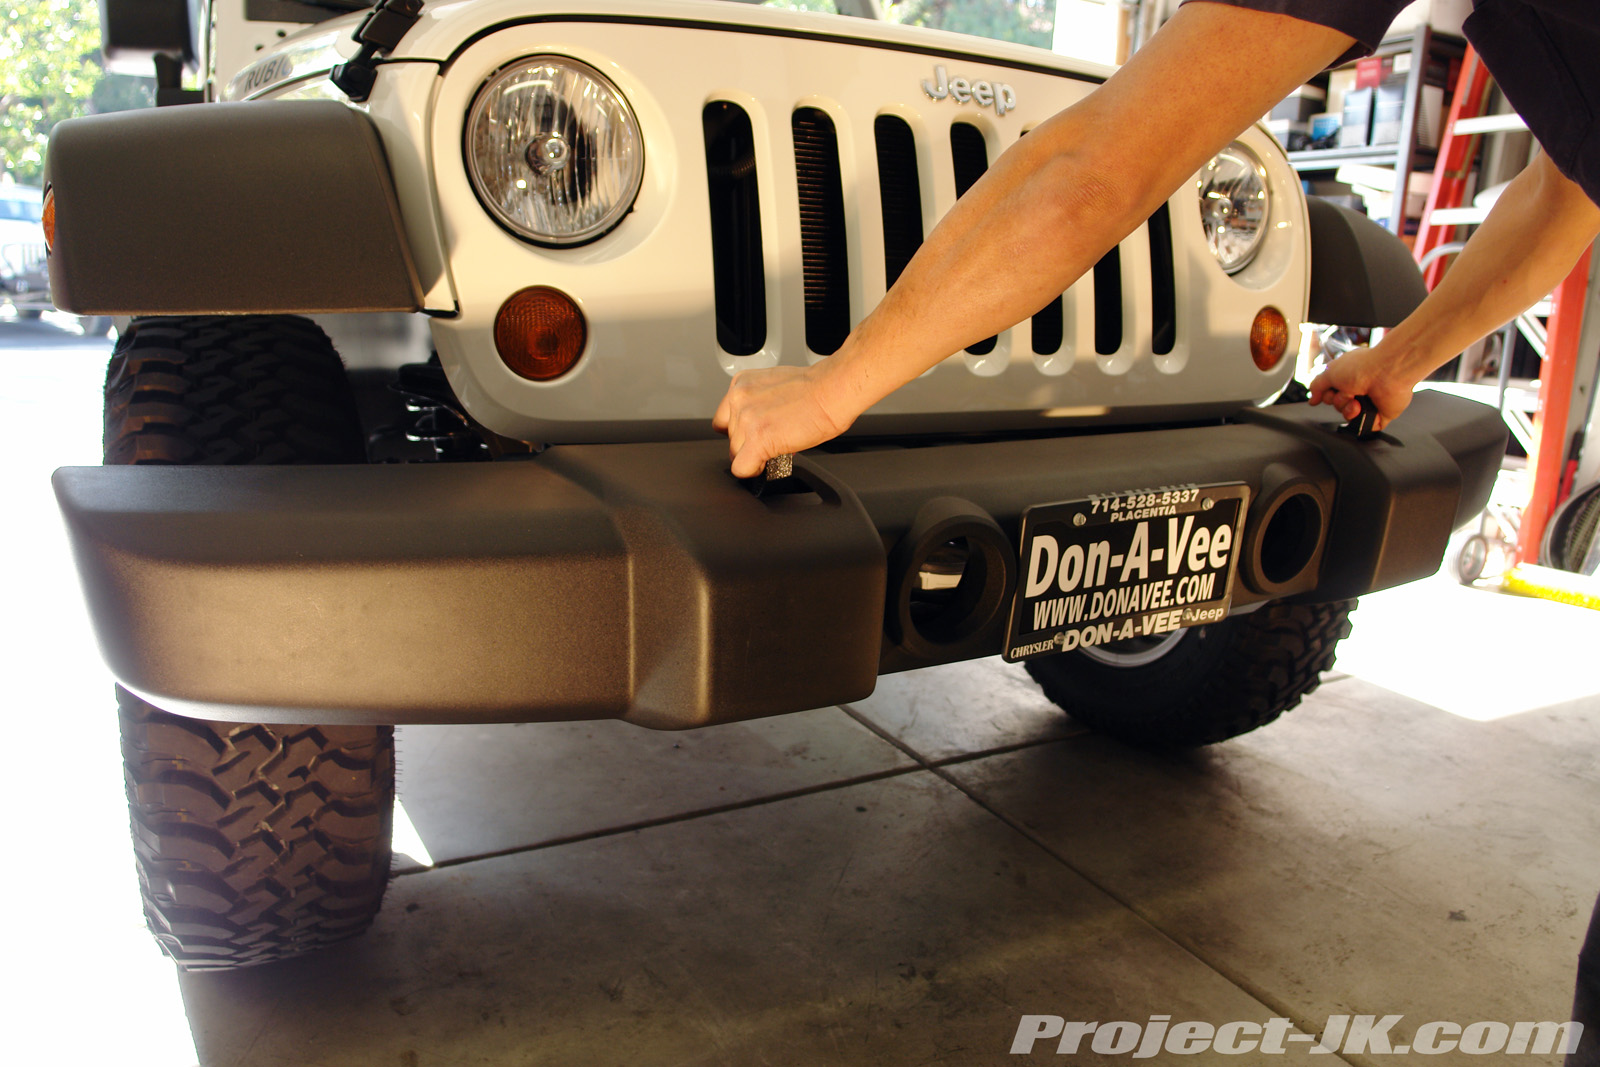 Shrockworks Jeep Jk Wrangler Stubby Front Bumper Installation Write Suspension Diagram Tj Carefully Pull Off Your Wranglers The Frame Rails If Came Equipped With Factory Tow Hooks Grab And Use Both Of Them To